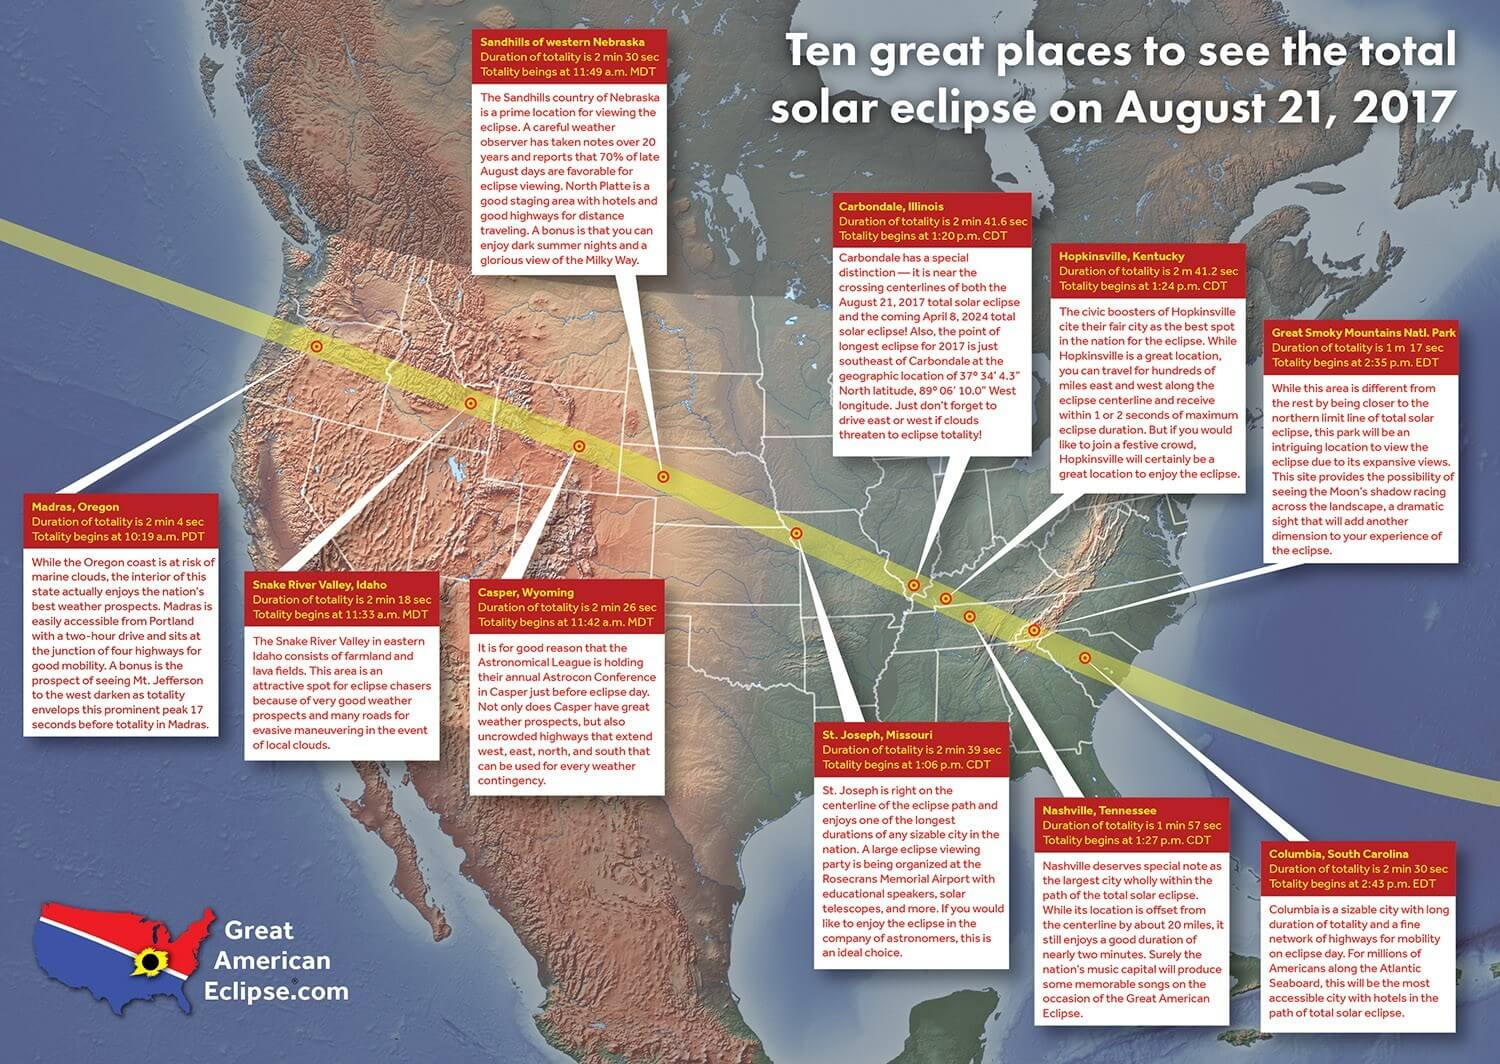 Eclipse Expected To Bring Thousands To Area DOT Encourages - Interactive us map county influx